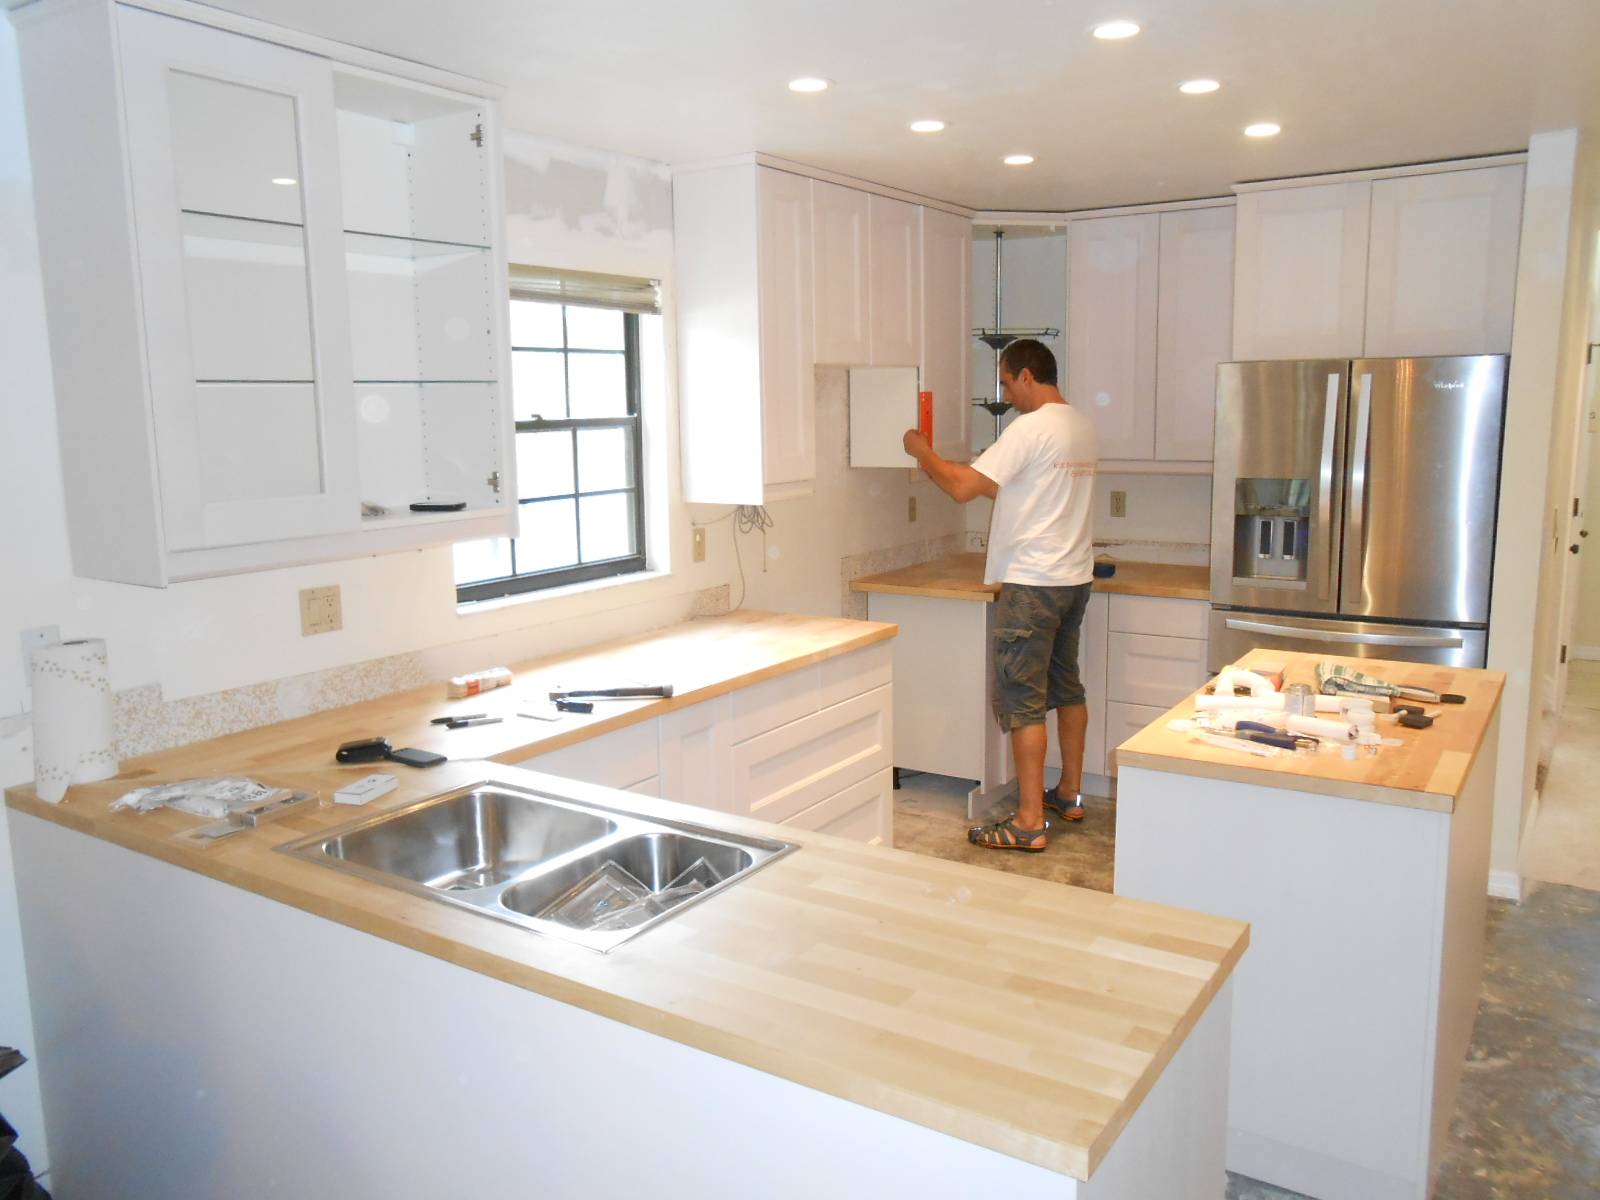 From shabby to chic kitchen remodels on a budget for Kitchen remodels on a budget photos